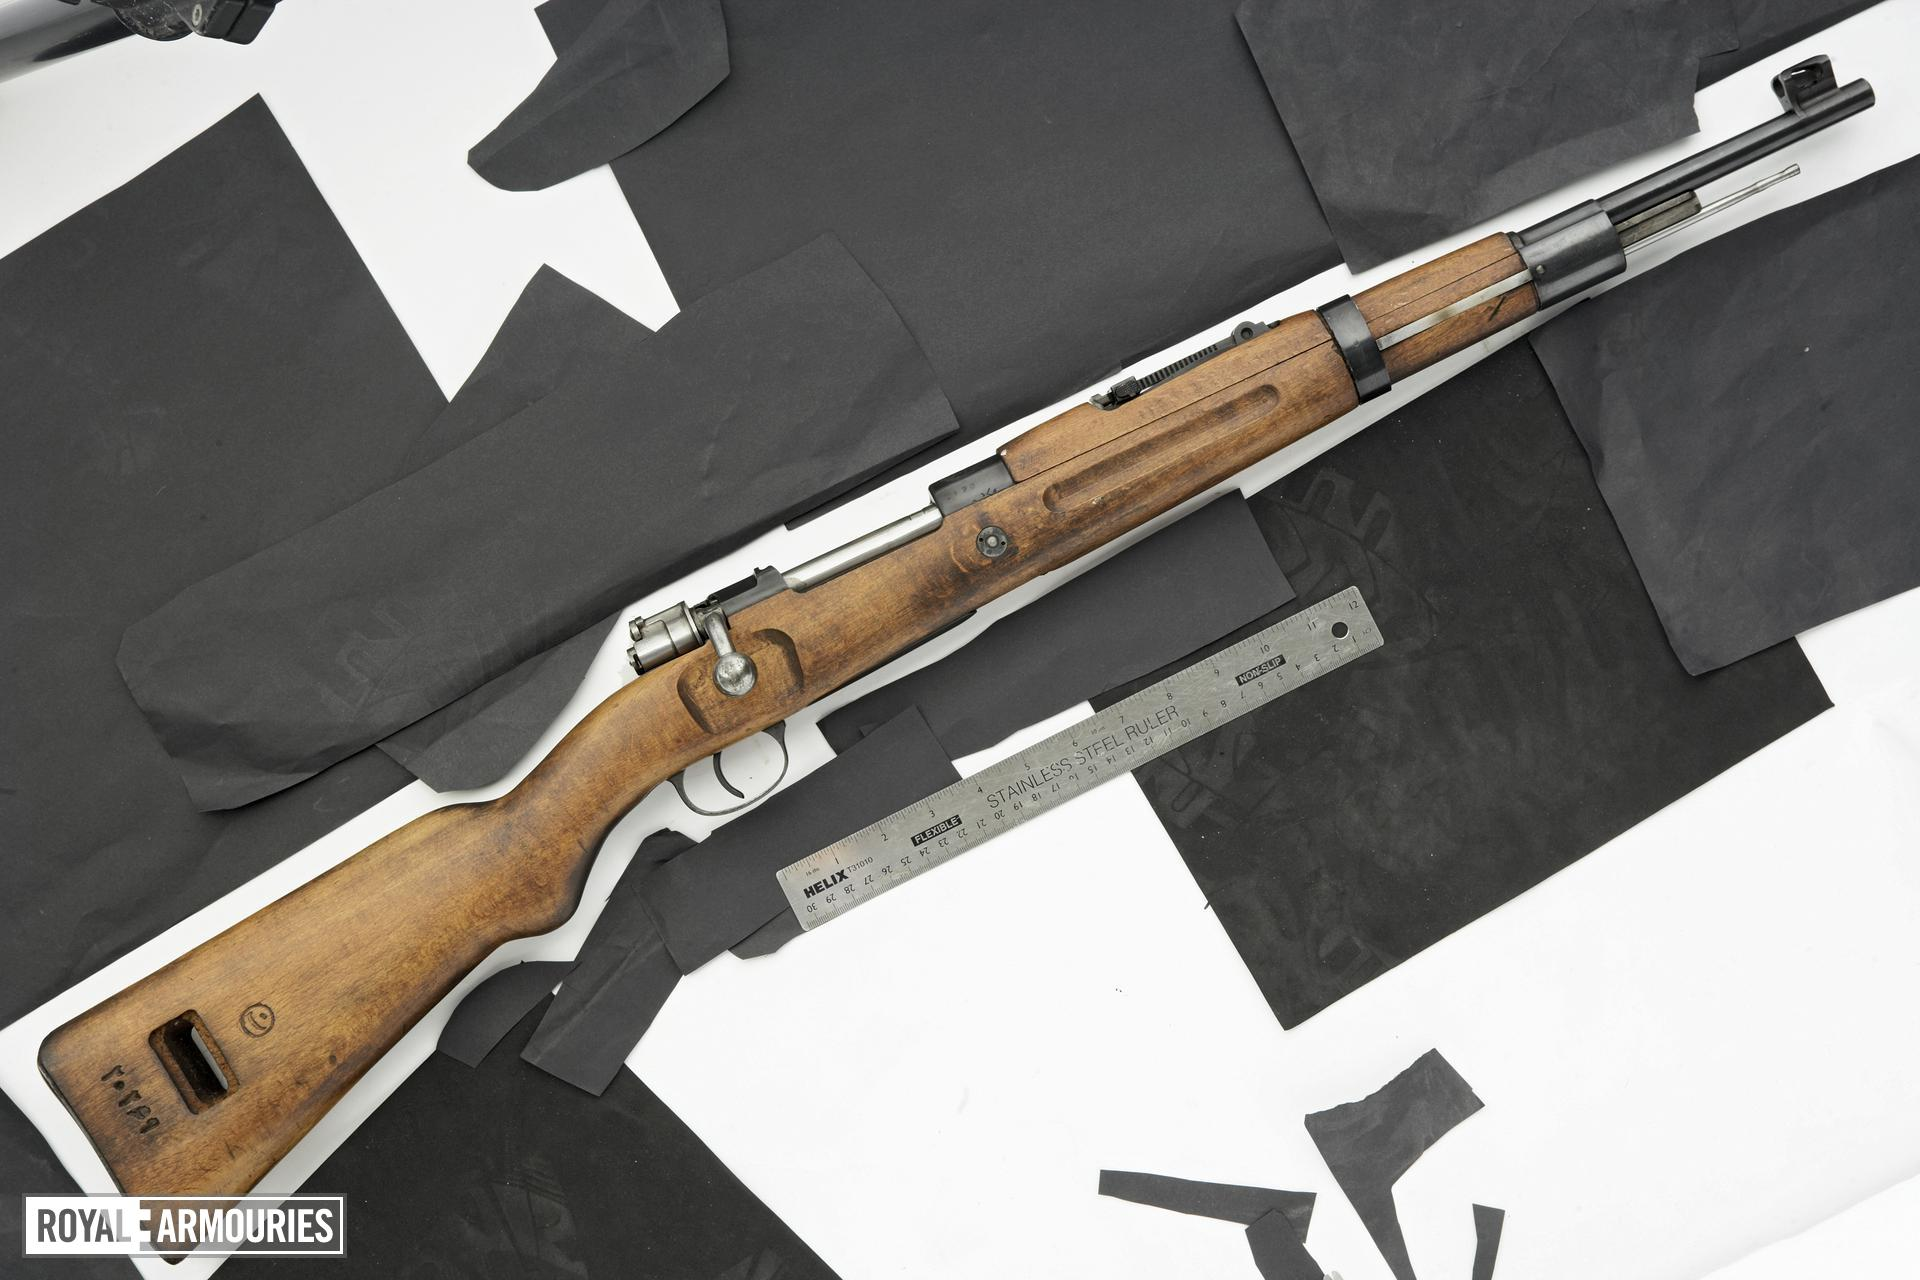 Centrefire bolt-action carbine - Mauser Model 49